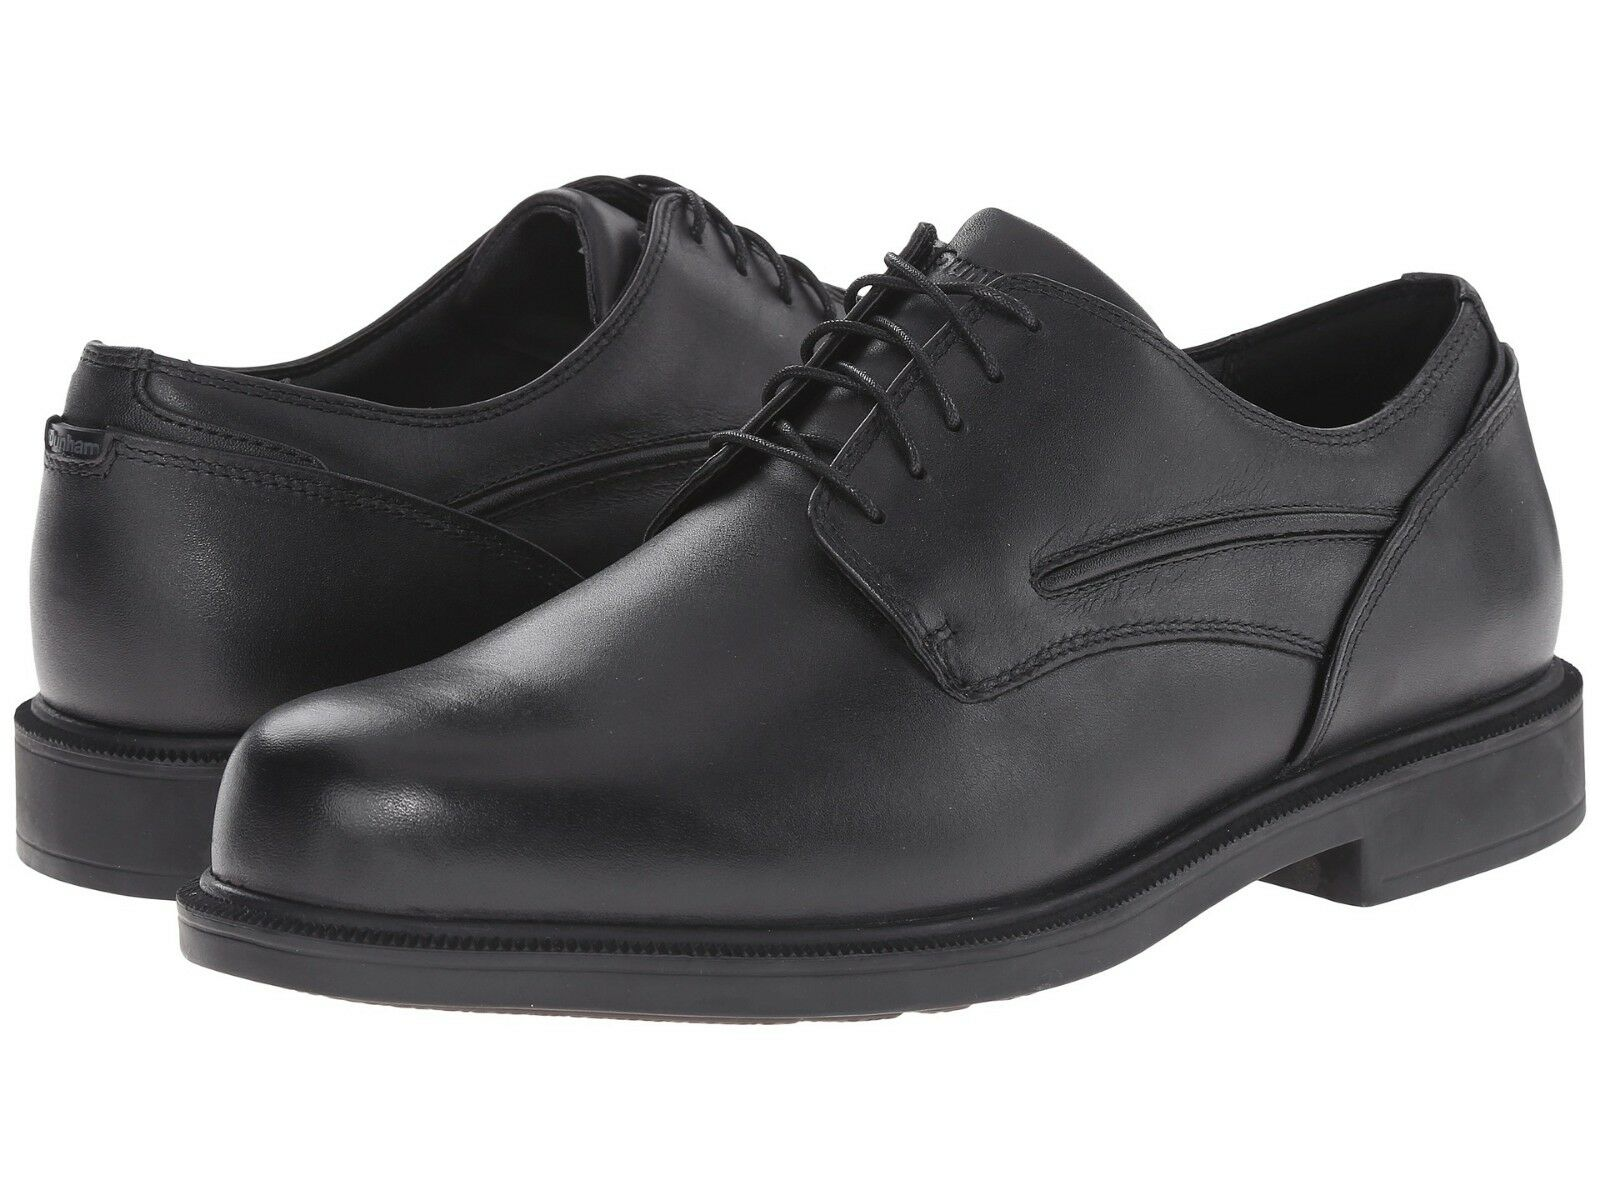 DUNHAM uomo BURLINGTON WATERPROOF LACE scarpe